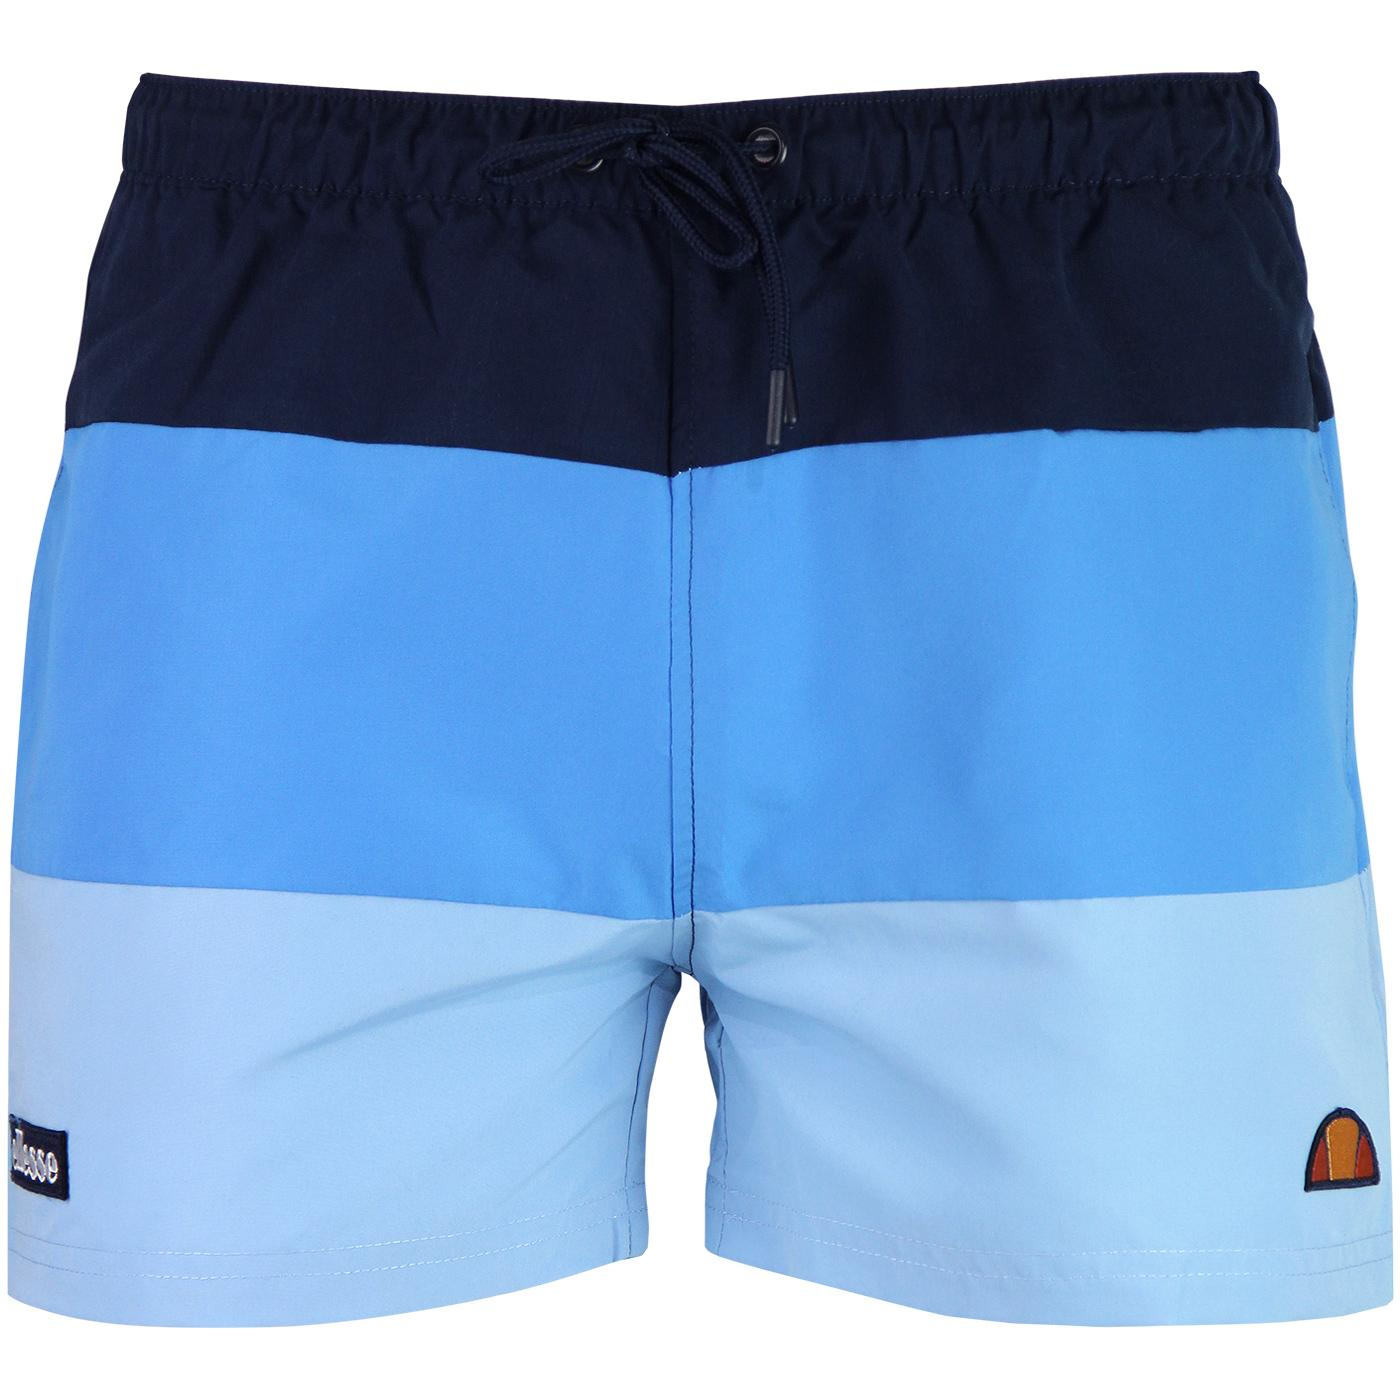 de4c36fa3c ELLESSE Cielo Retro 1980s Colour Block Shorts in Light Blue